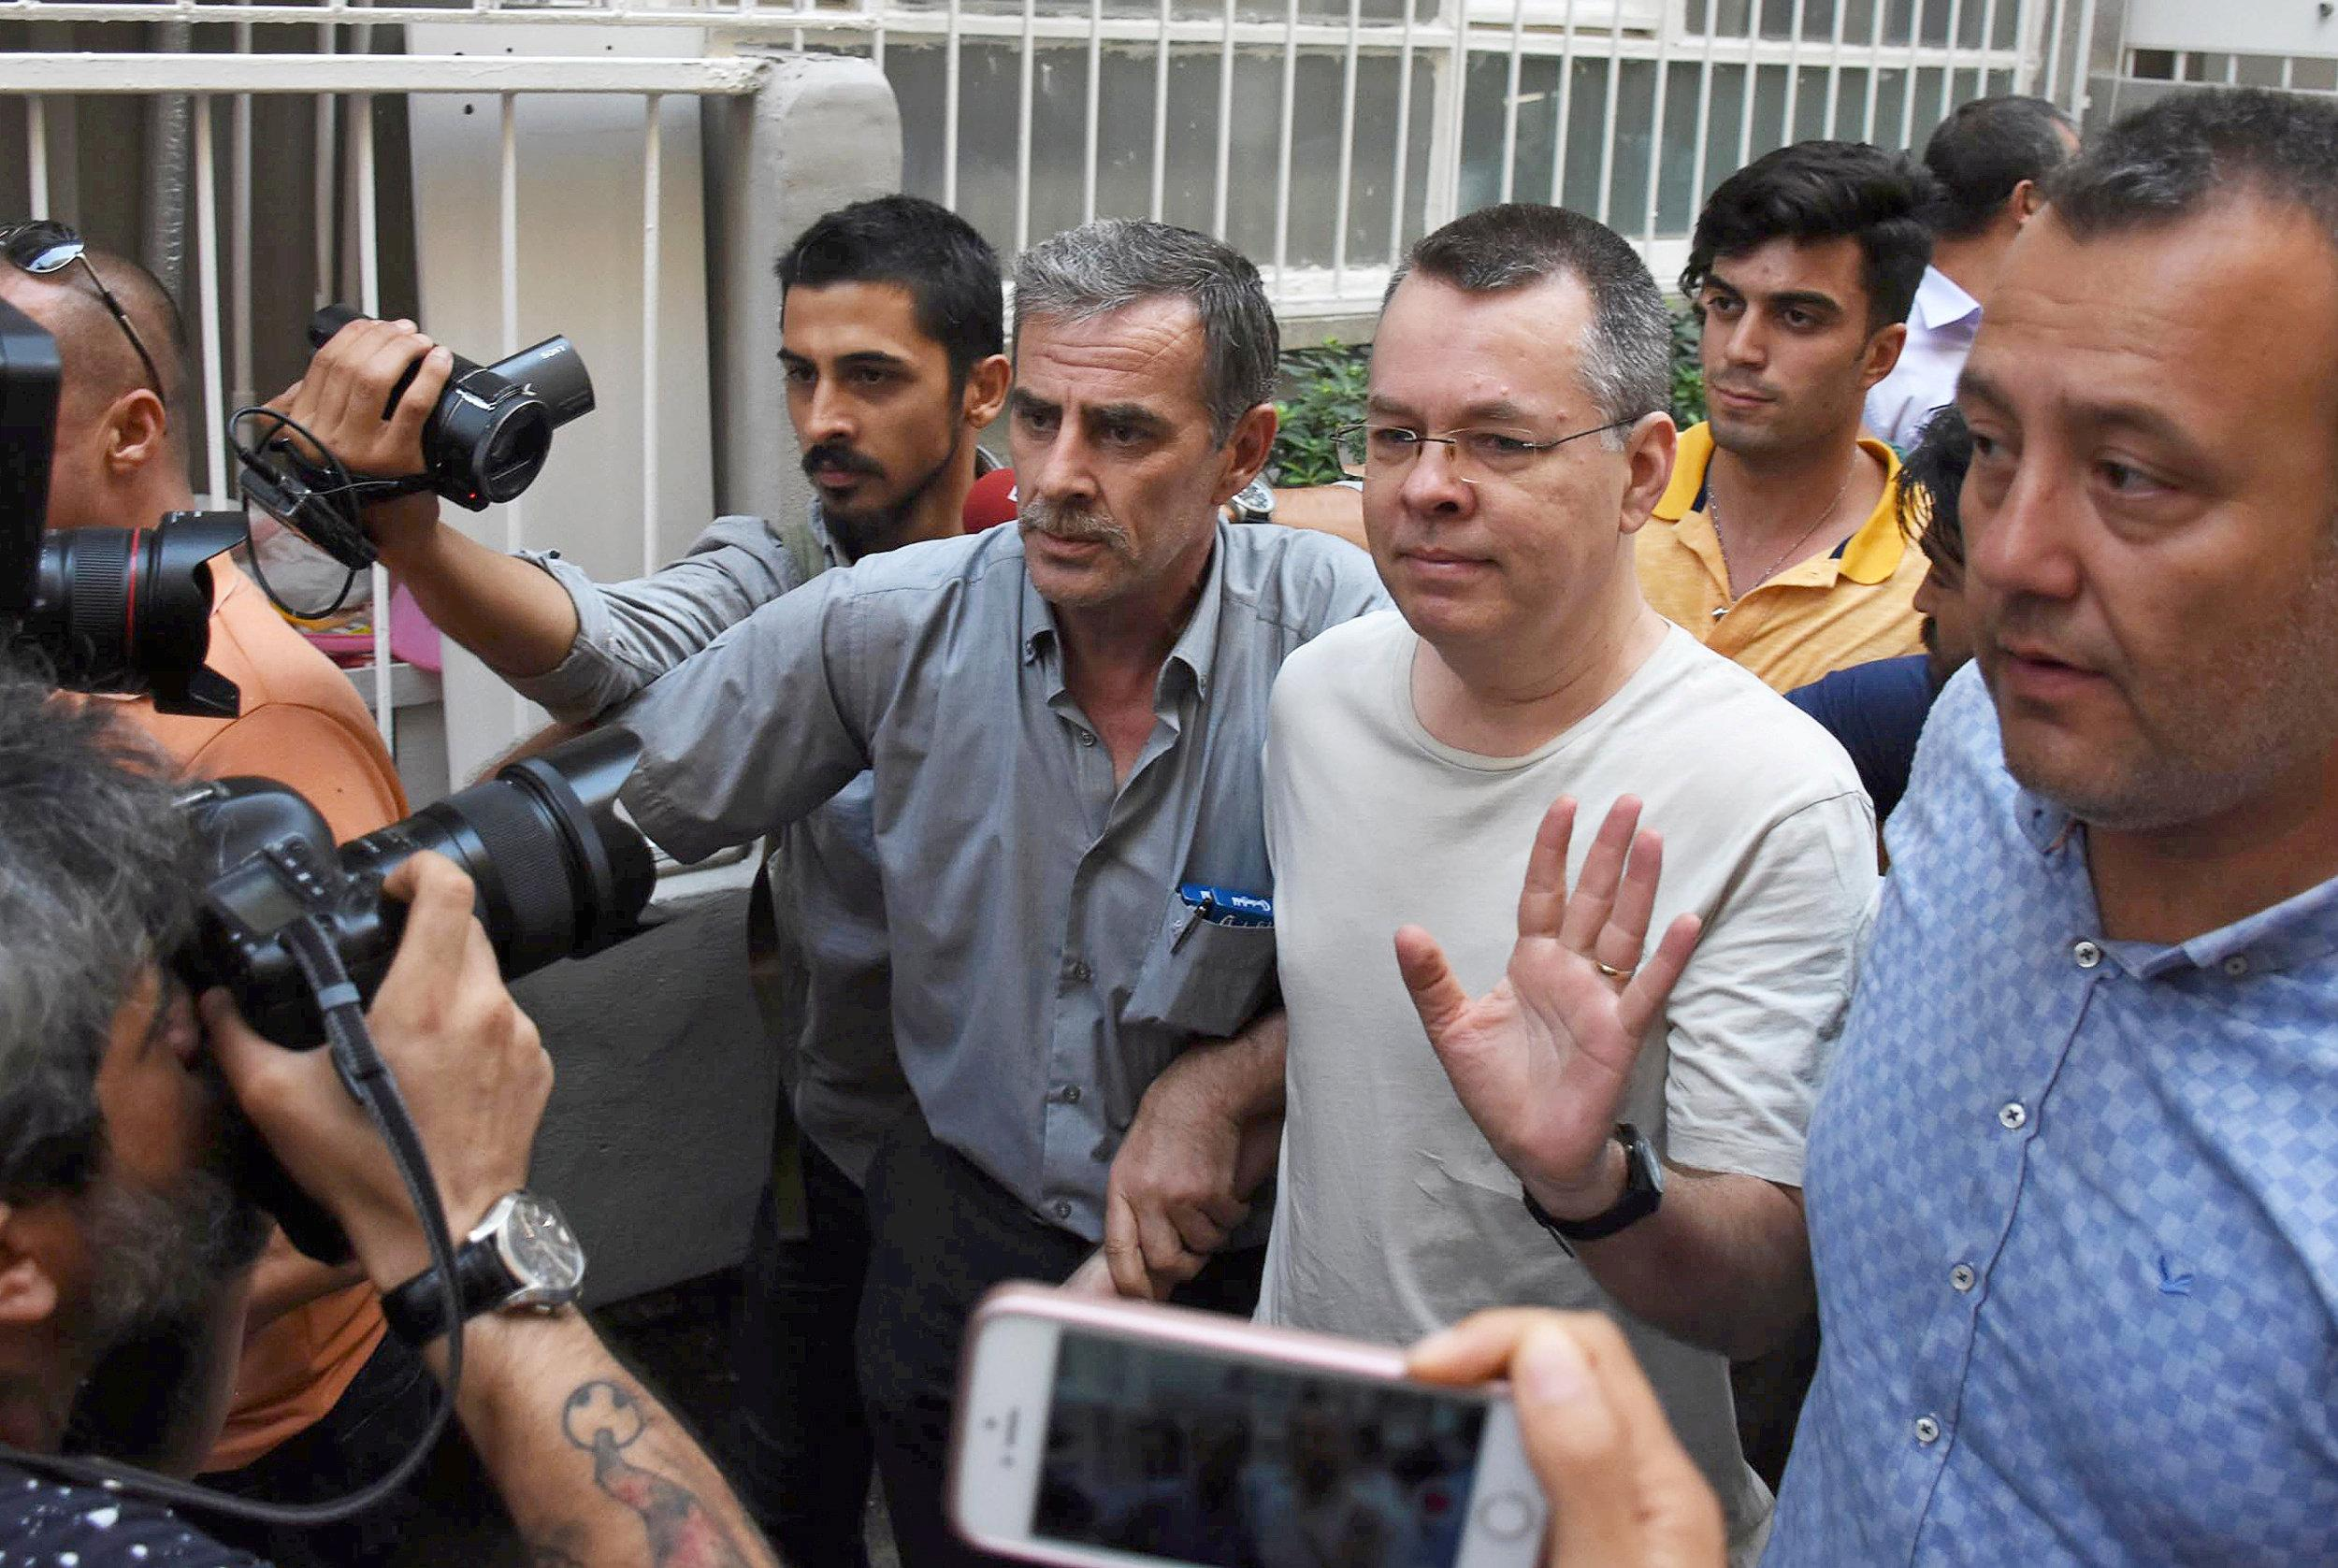 U.S. pastor Andrew Brunson reacts as he arrives at his home after being released from the prison in Izmir, Turkey July 25, 2018. Demiroren News Agency/DHA via